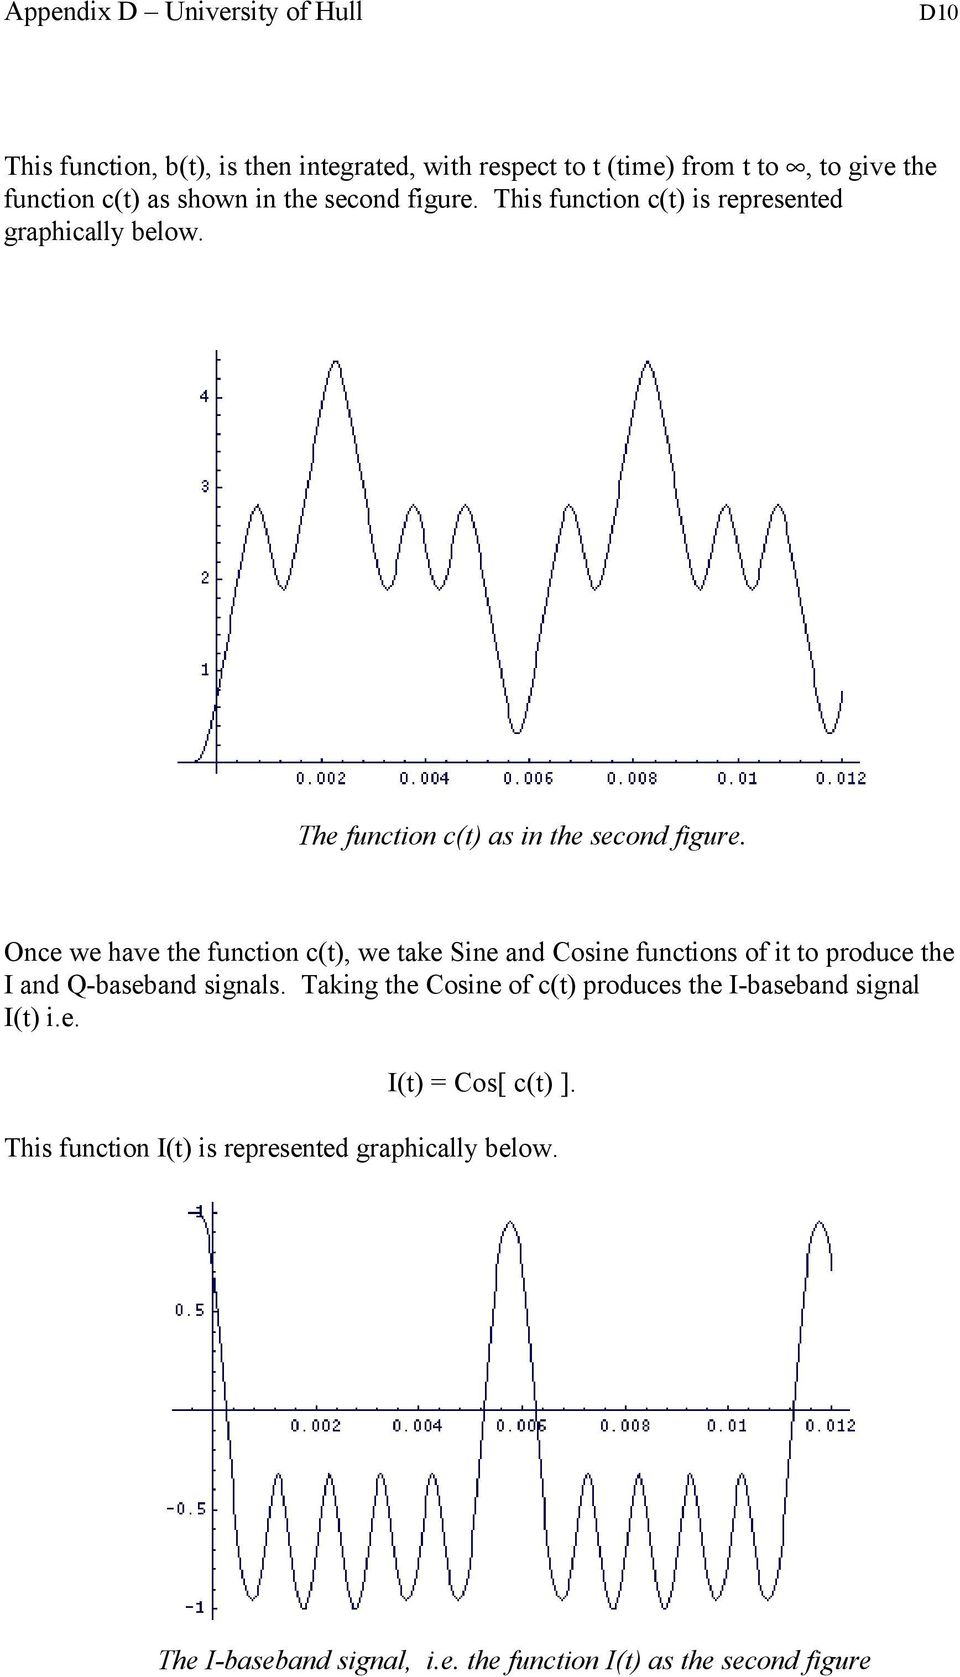 Once we have the function c(t), we take Sine and Cosine functions of it to produce the I and Q-baseband signals.